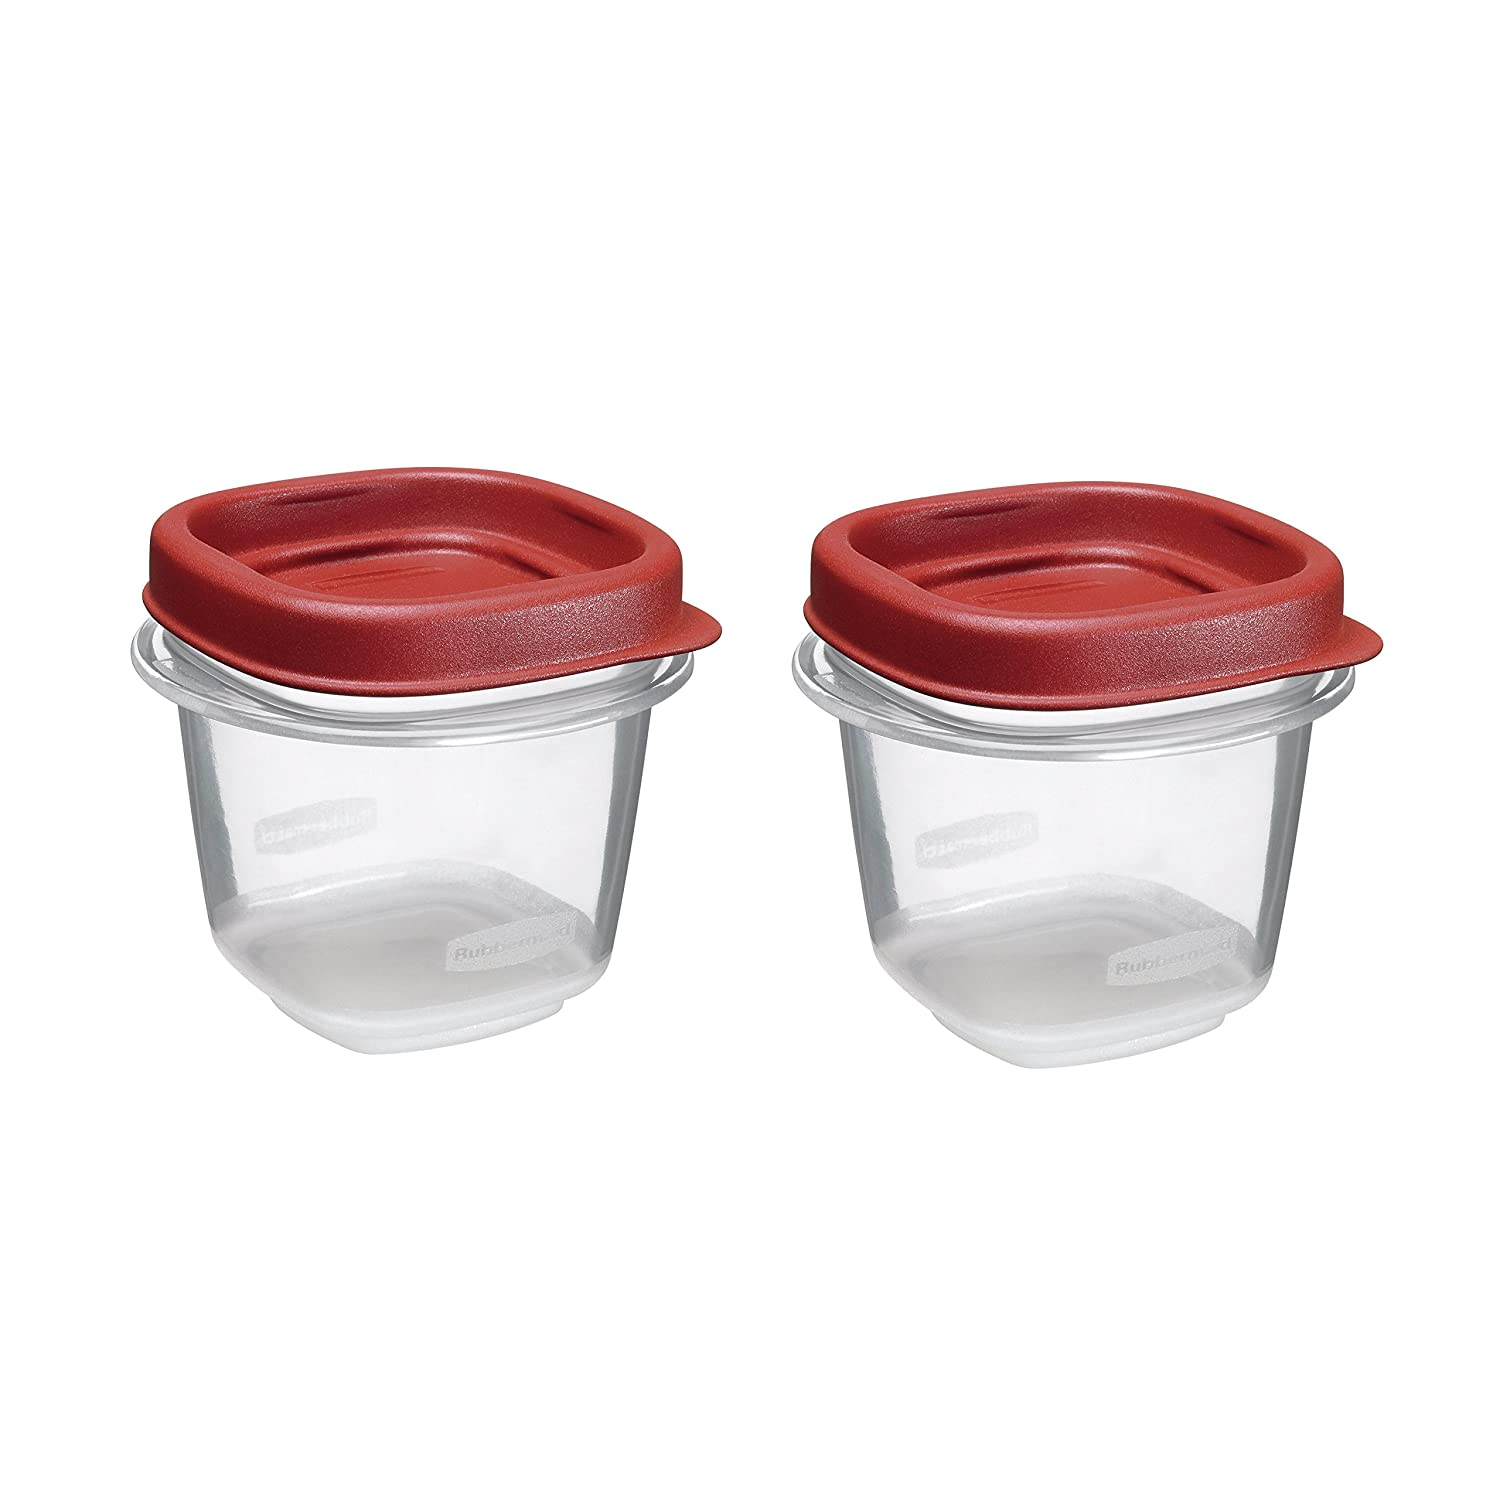 Freezer Containers Bpa Free Rubbermaid Easy Find Lid Food Storage Set 1/2 Cup 4 Piece ...